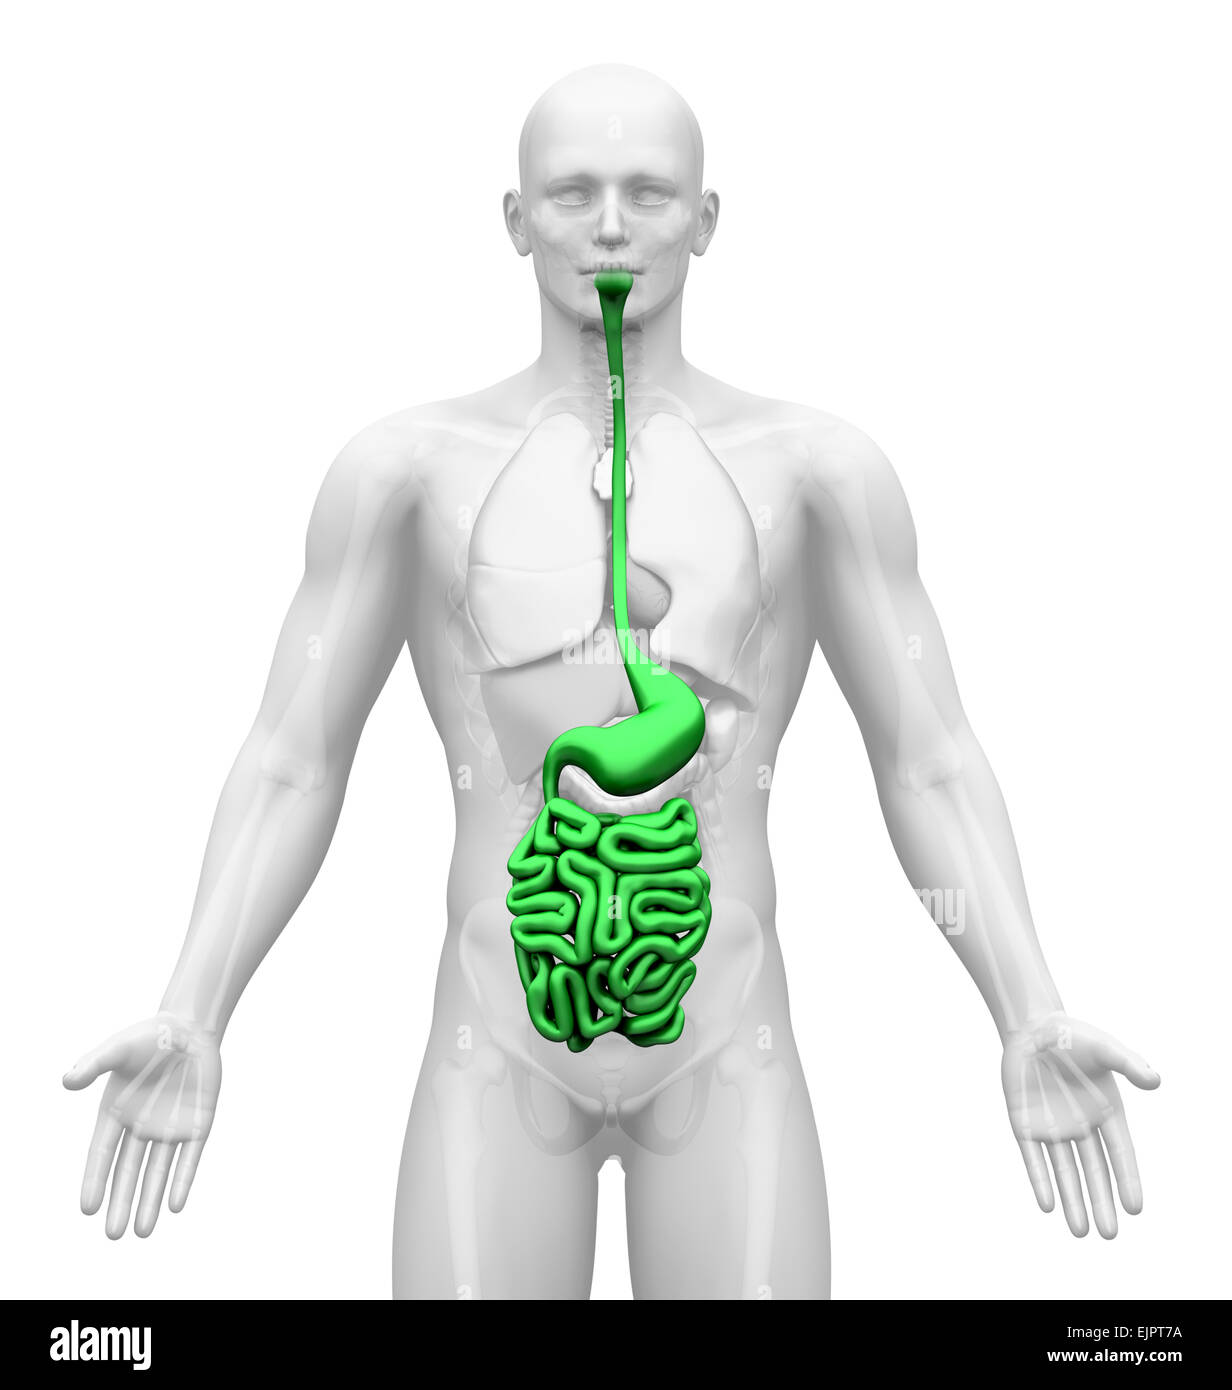 Male Guts Stomach Anatomy Stock Photo 80407246 Alamy